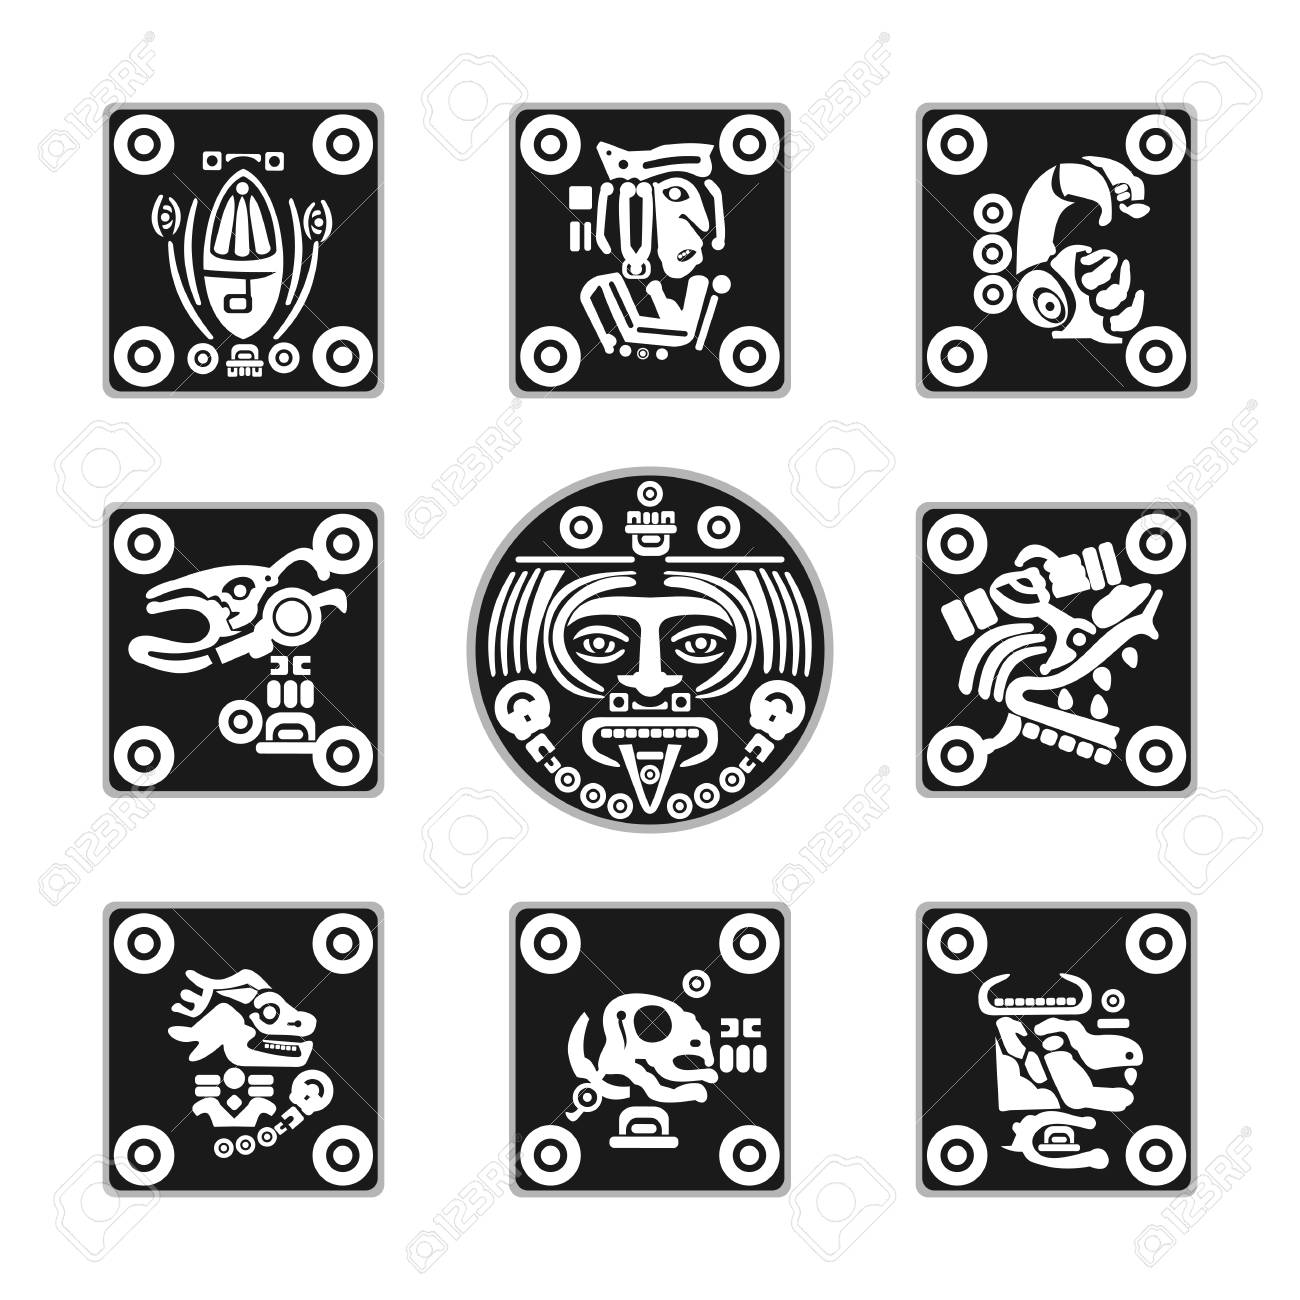 set of flat Aztec ornament icons in vector format - 102033707